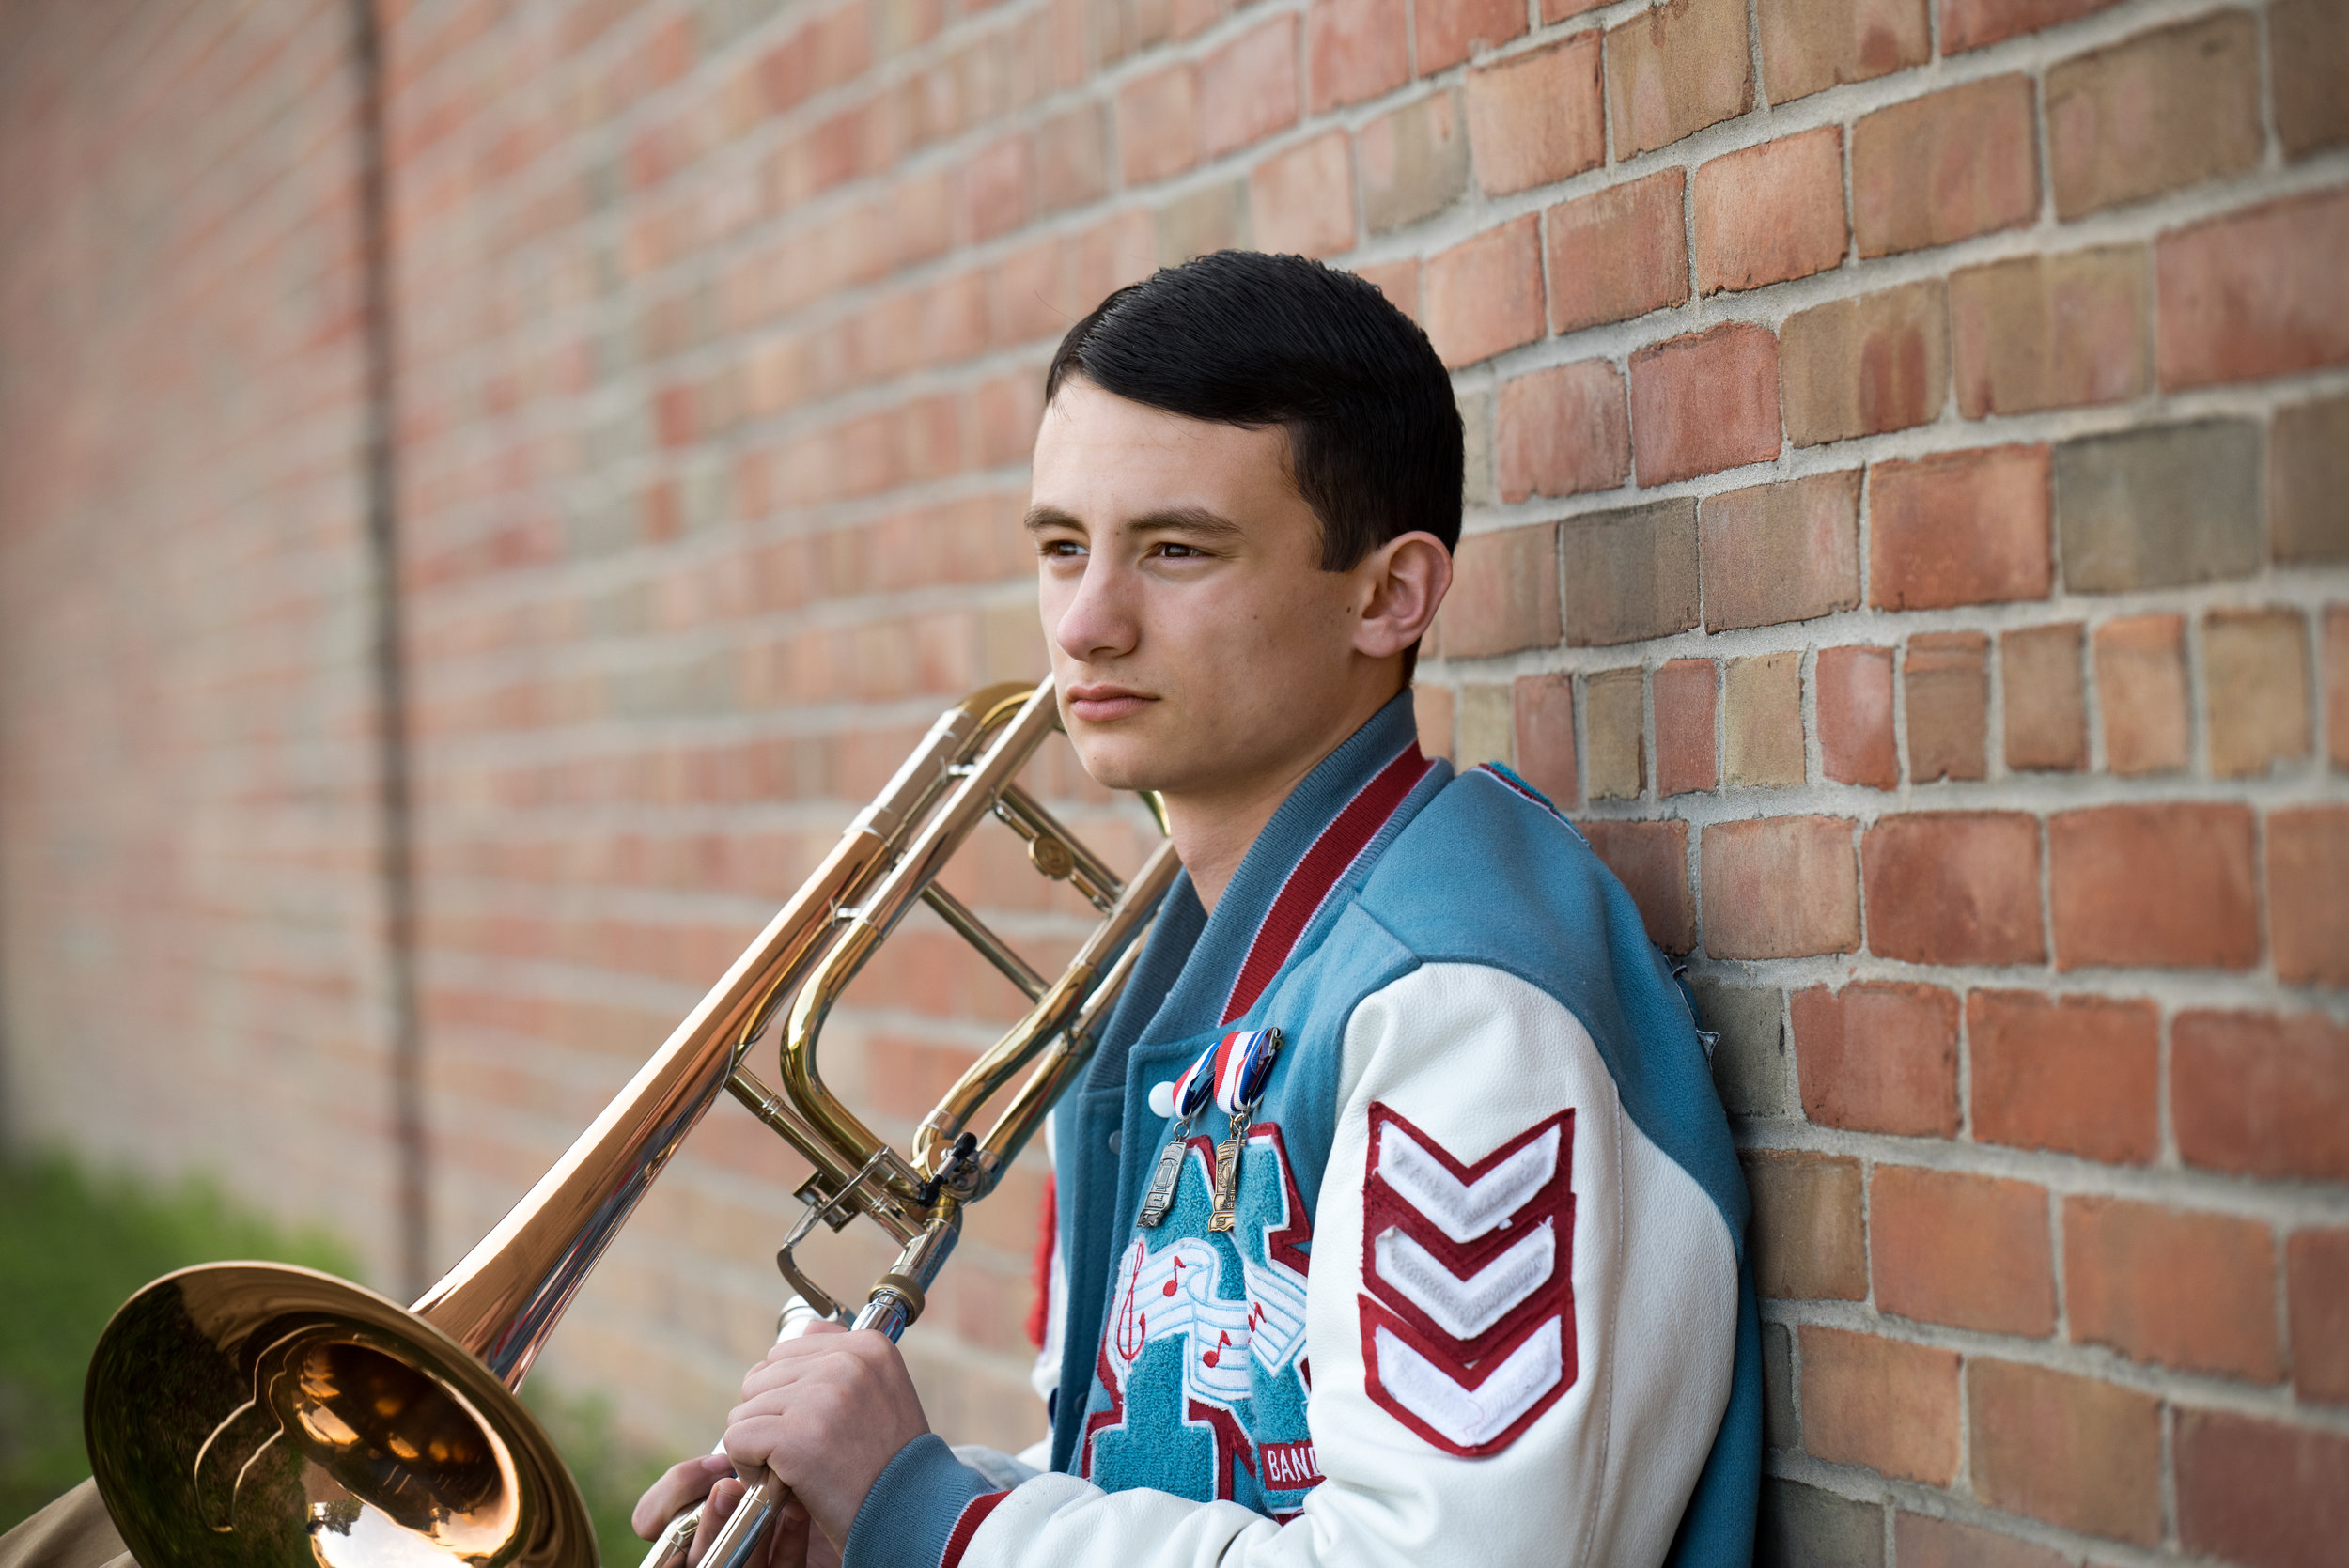 Maconaquah High School Senior Photography Session | Class of 2019 Marching Band